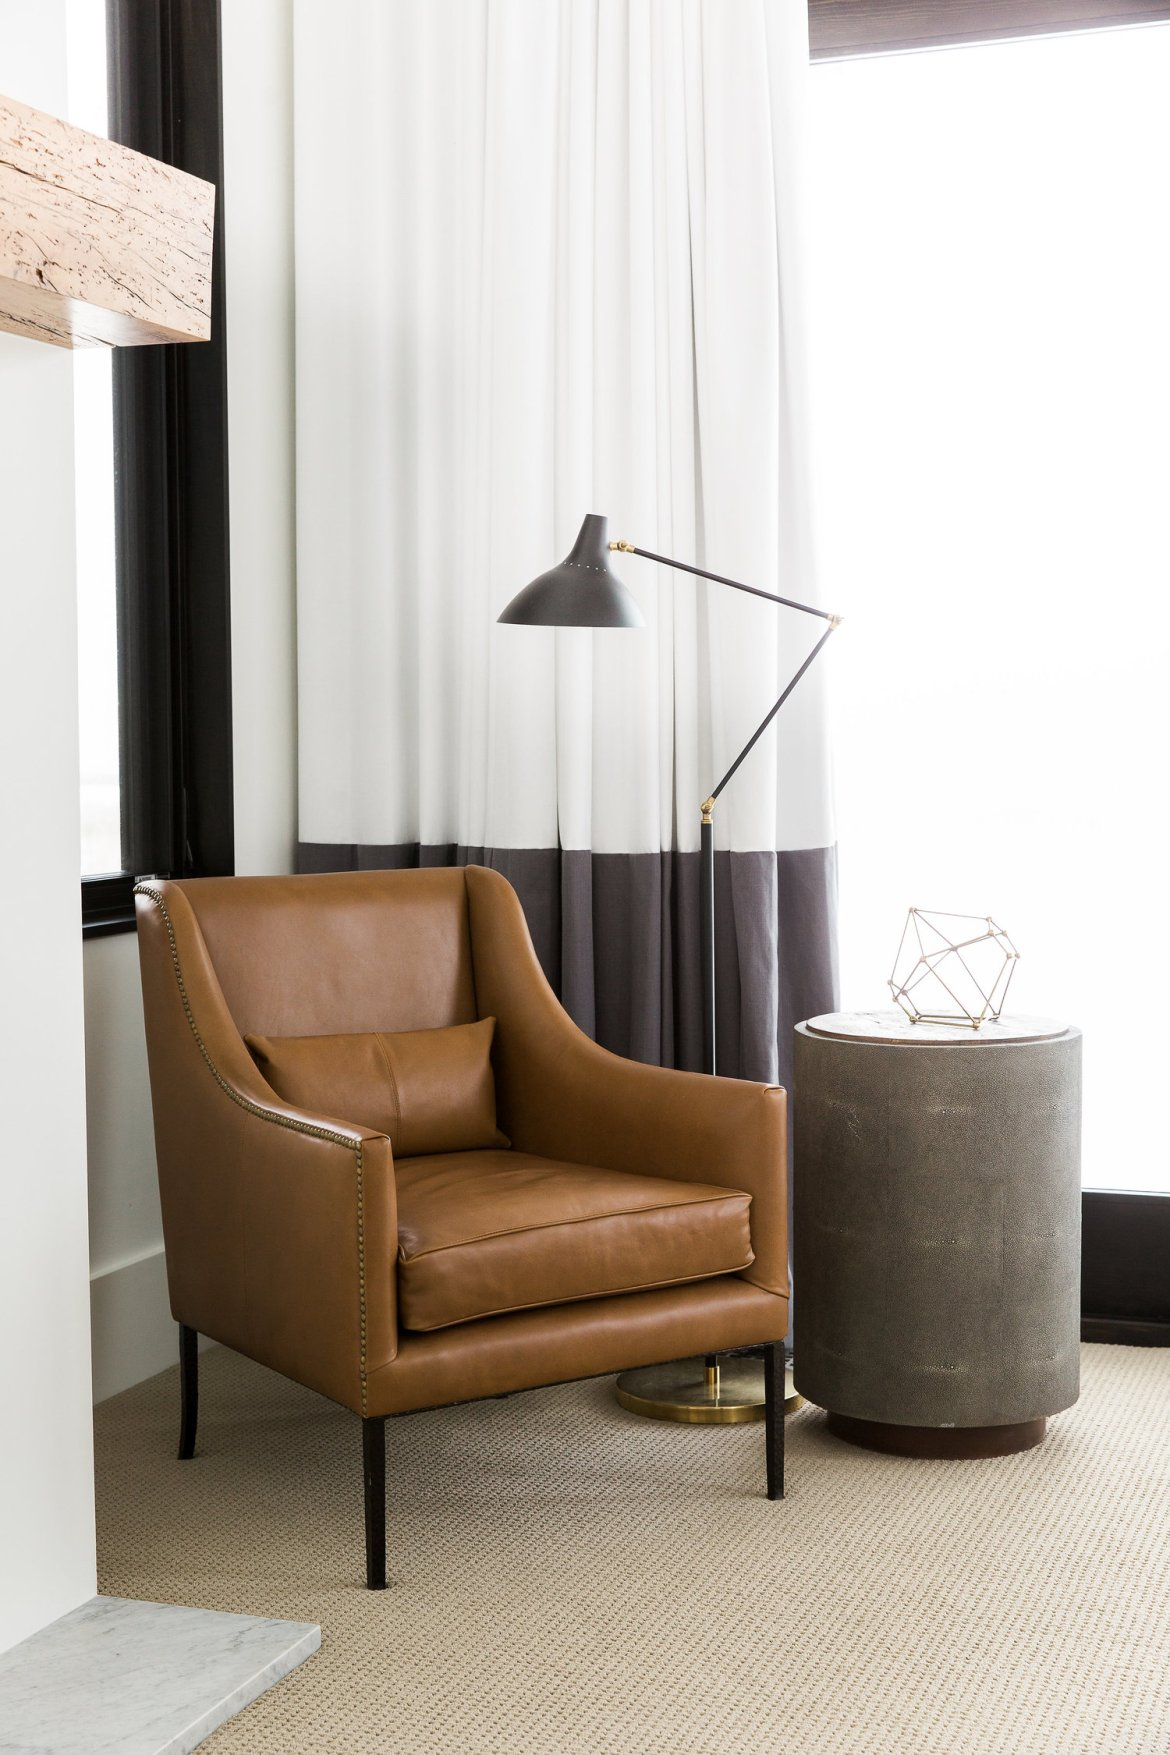 Modern style master bedroom corner with accent chair and floor lamp.